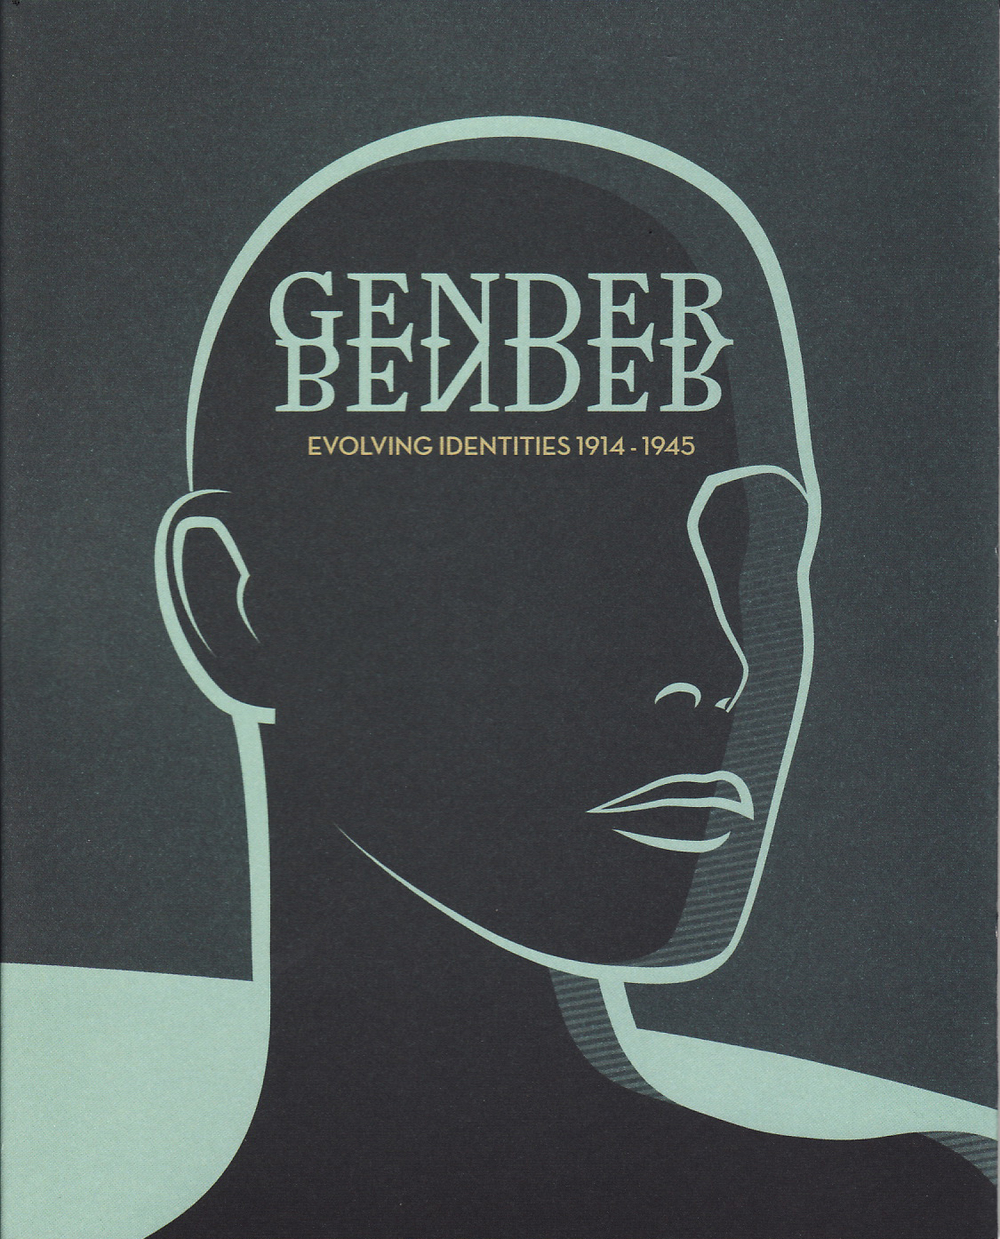 Gender Bender catalog.jpg